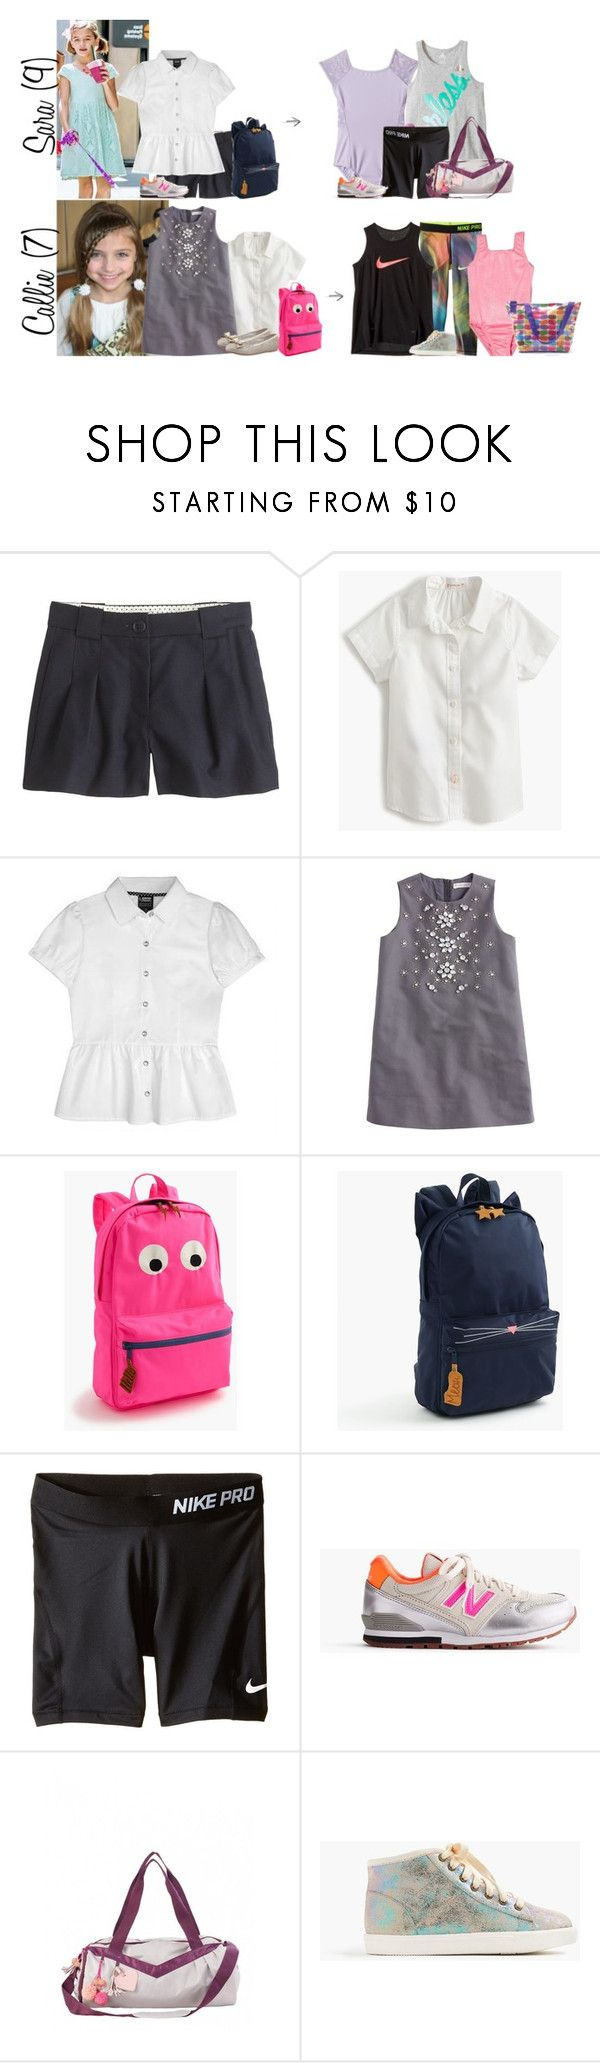 """""""Wednesday // School, Little Ones Play Date & Activities Privates // 6.7.17"""" by graywolf145 ❤ liked on Polyvore featuring J.Crew, NIKE, New Balance, Iscream and GrayWolfFamily"""